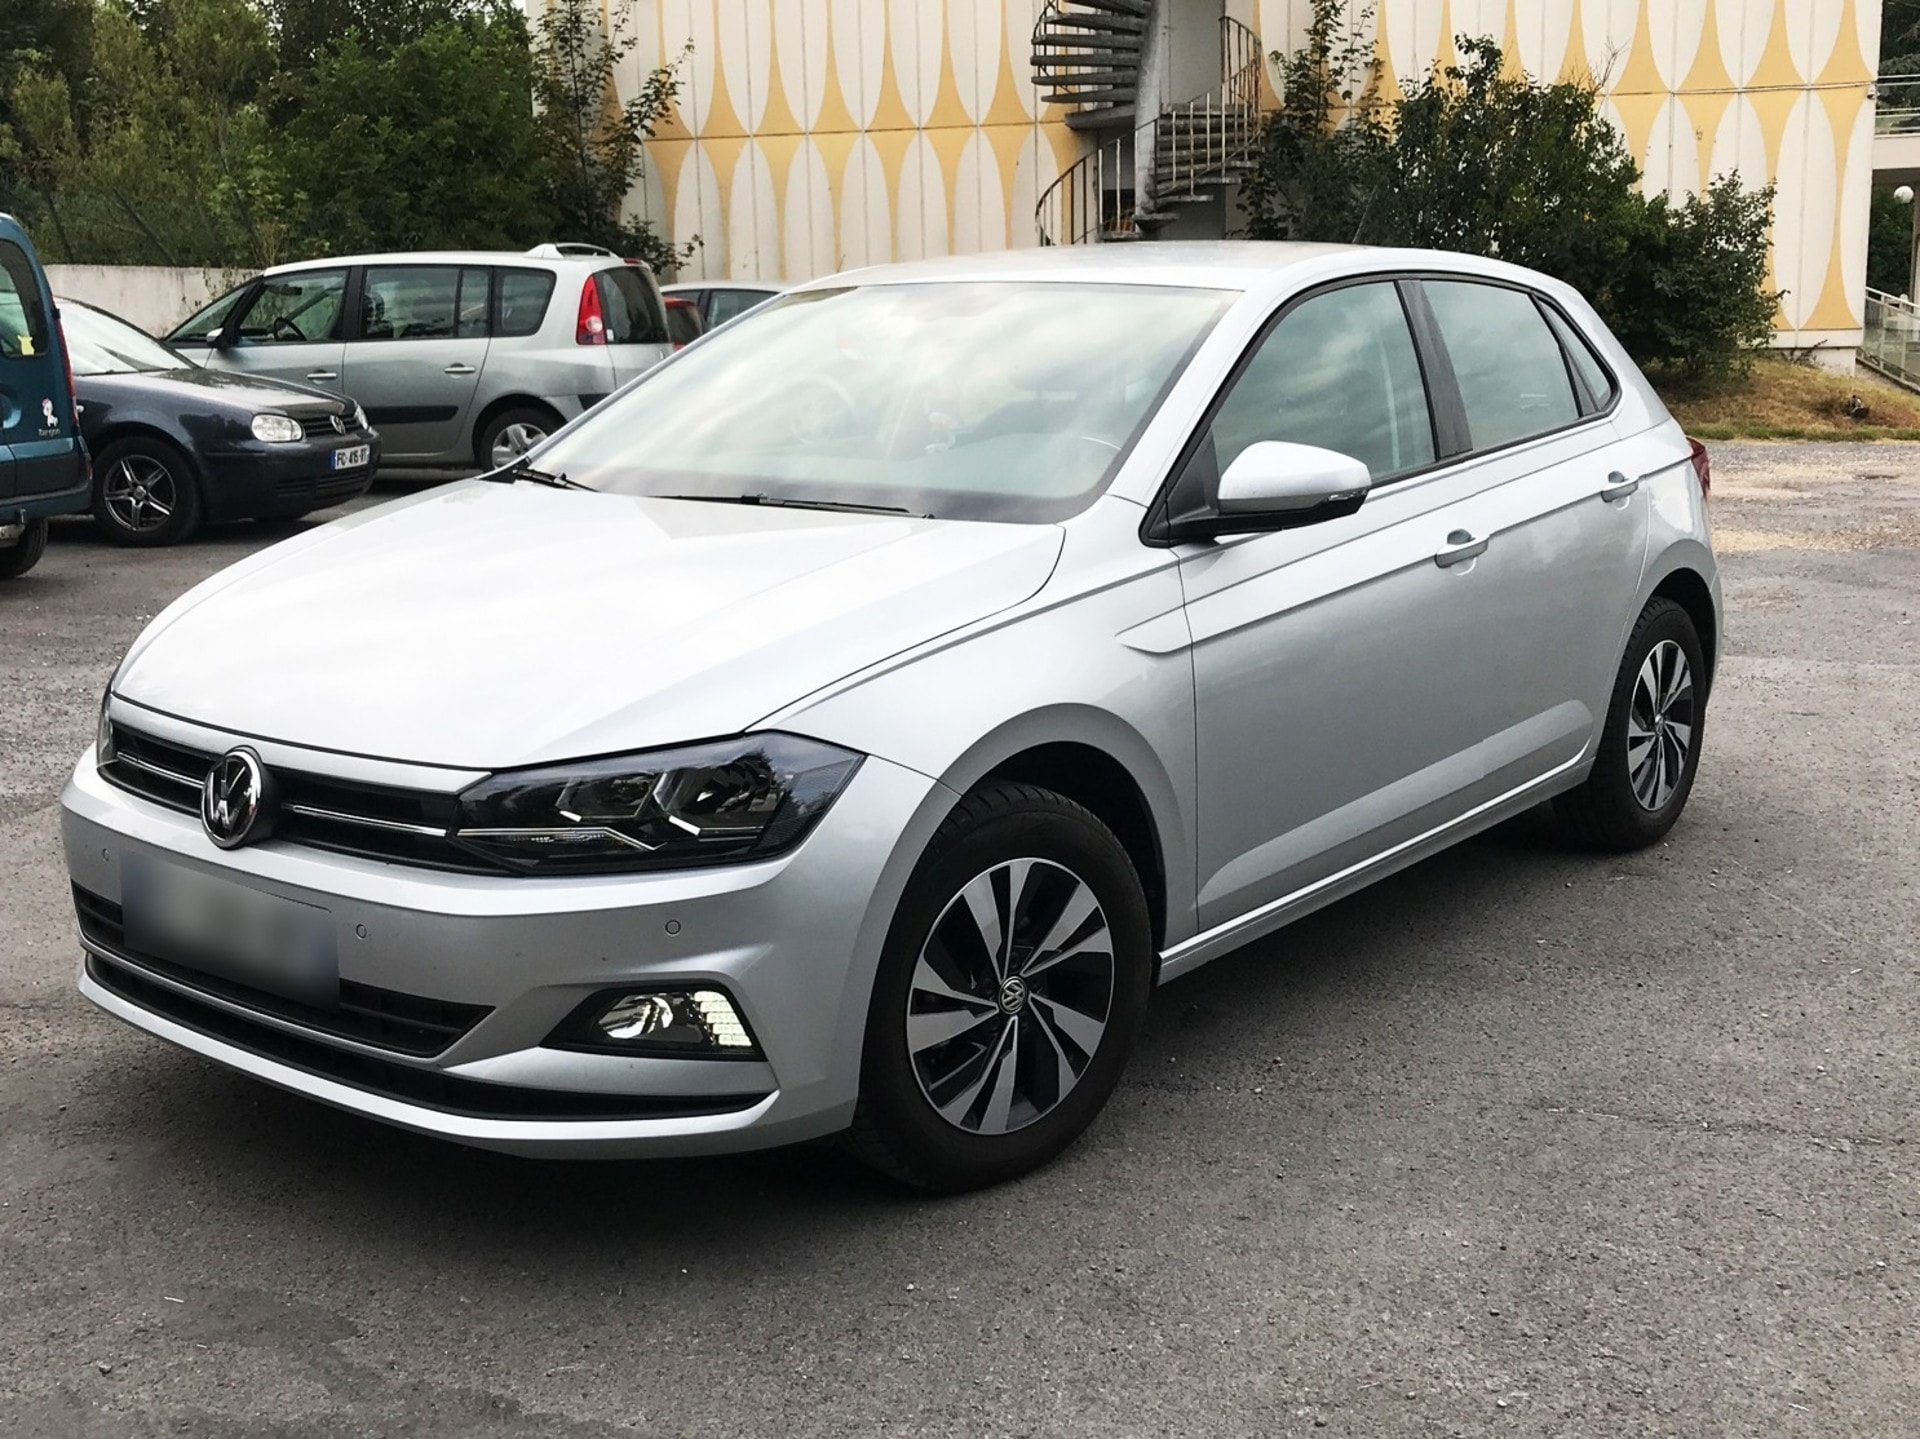 VOLKSWAGEN POLO 1.0 TSI 95 CONFORT LINE BUSINESS - Carventura